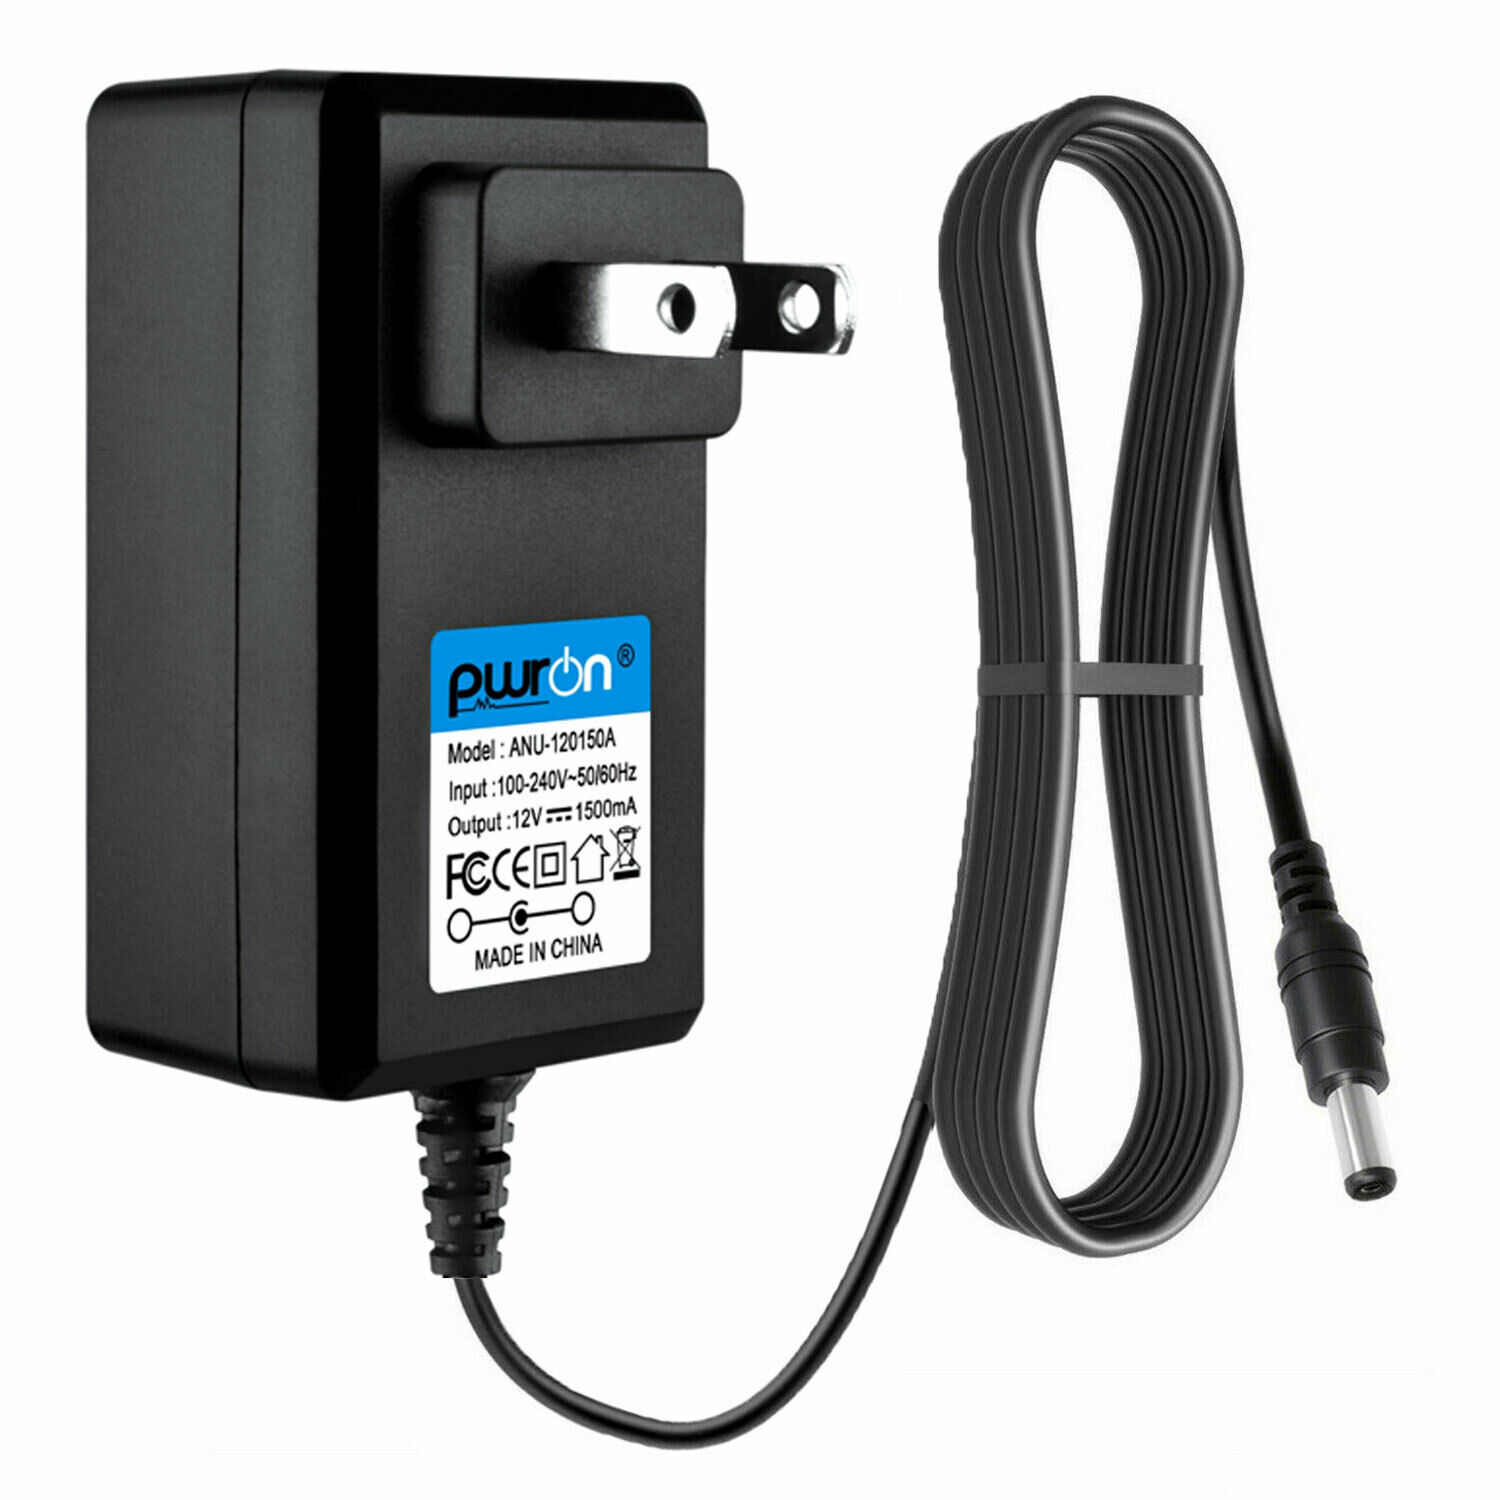 PwrON 2.5mm x 5.5mm CCTV Power Adapter 12V DC 1.5A Charger For Q-See Security